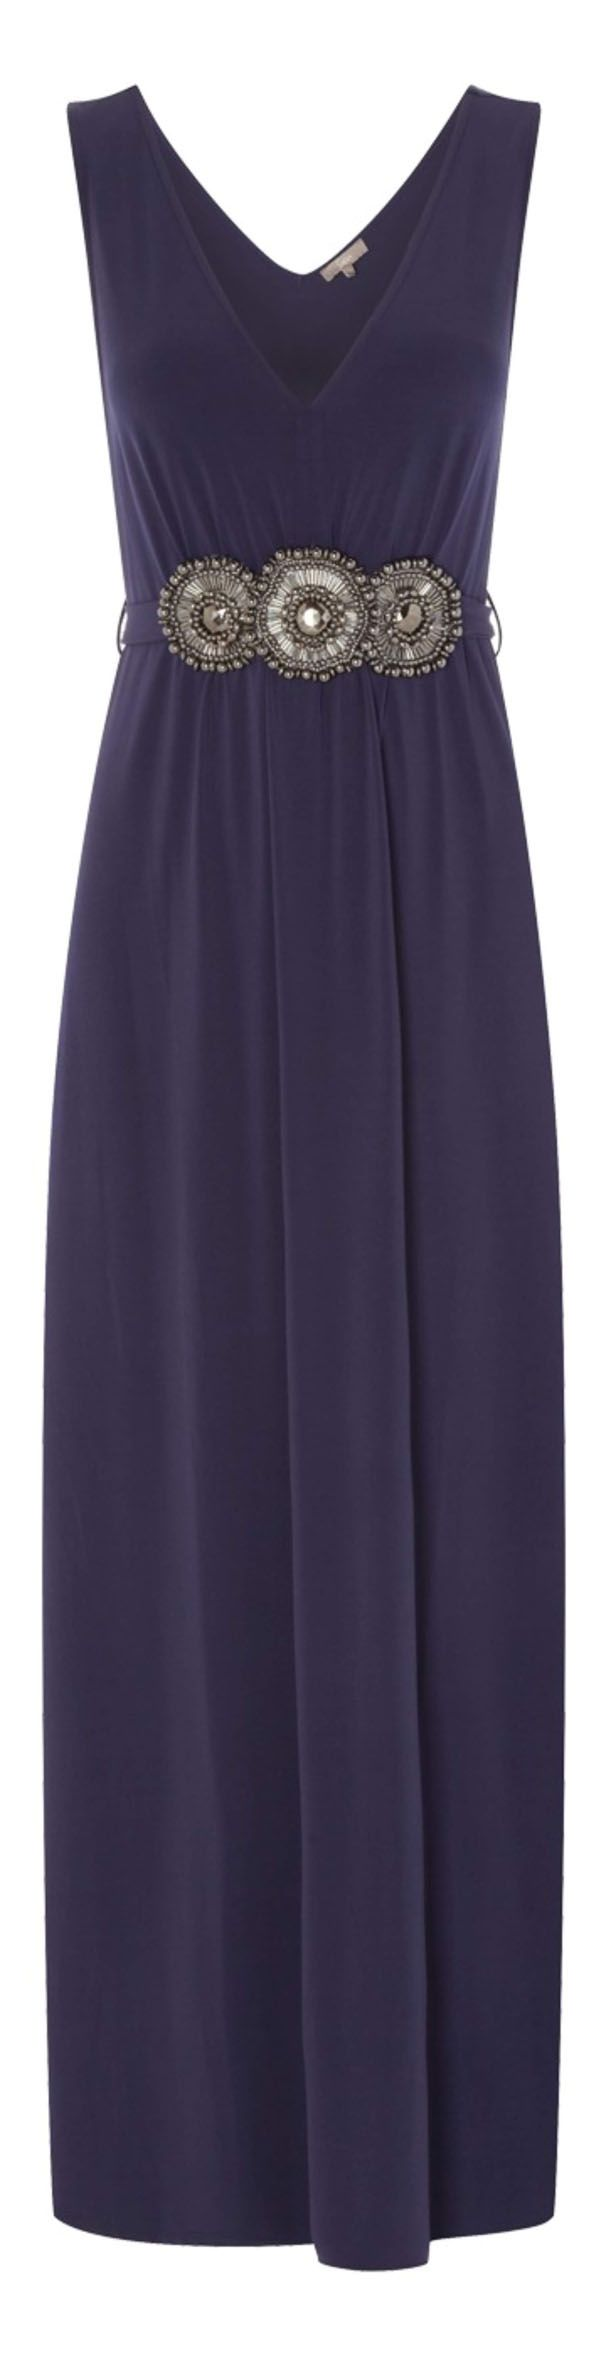 Plus size cruise wear for evenings - matalan - click to read: http ...